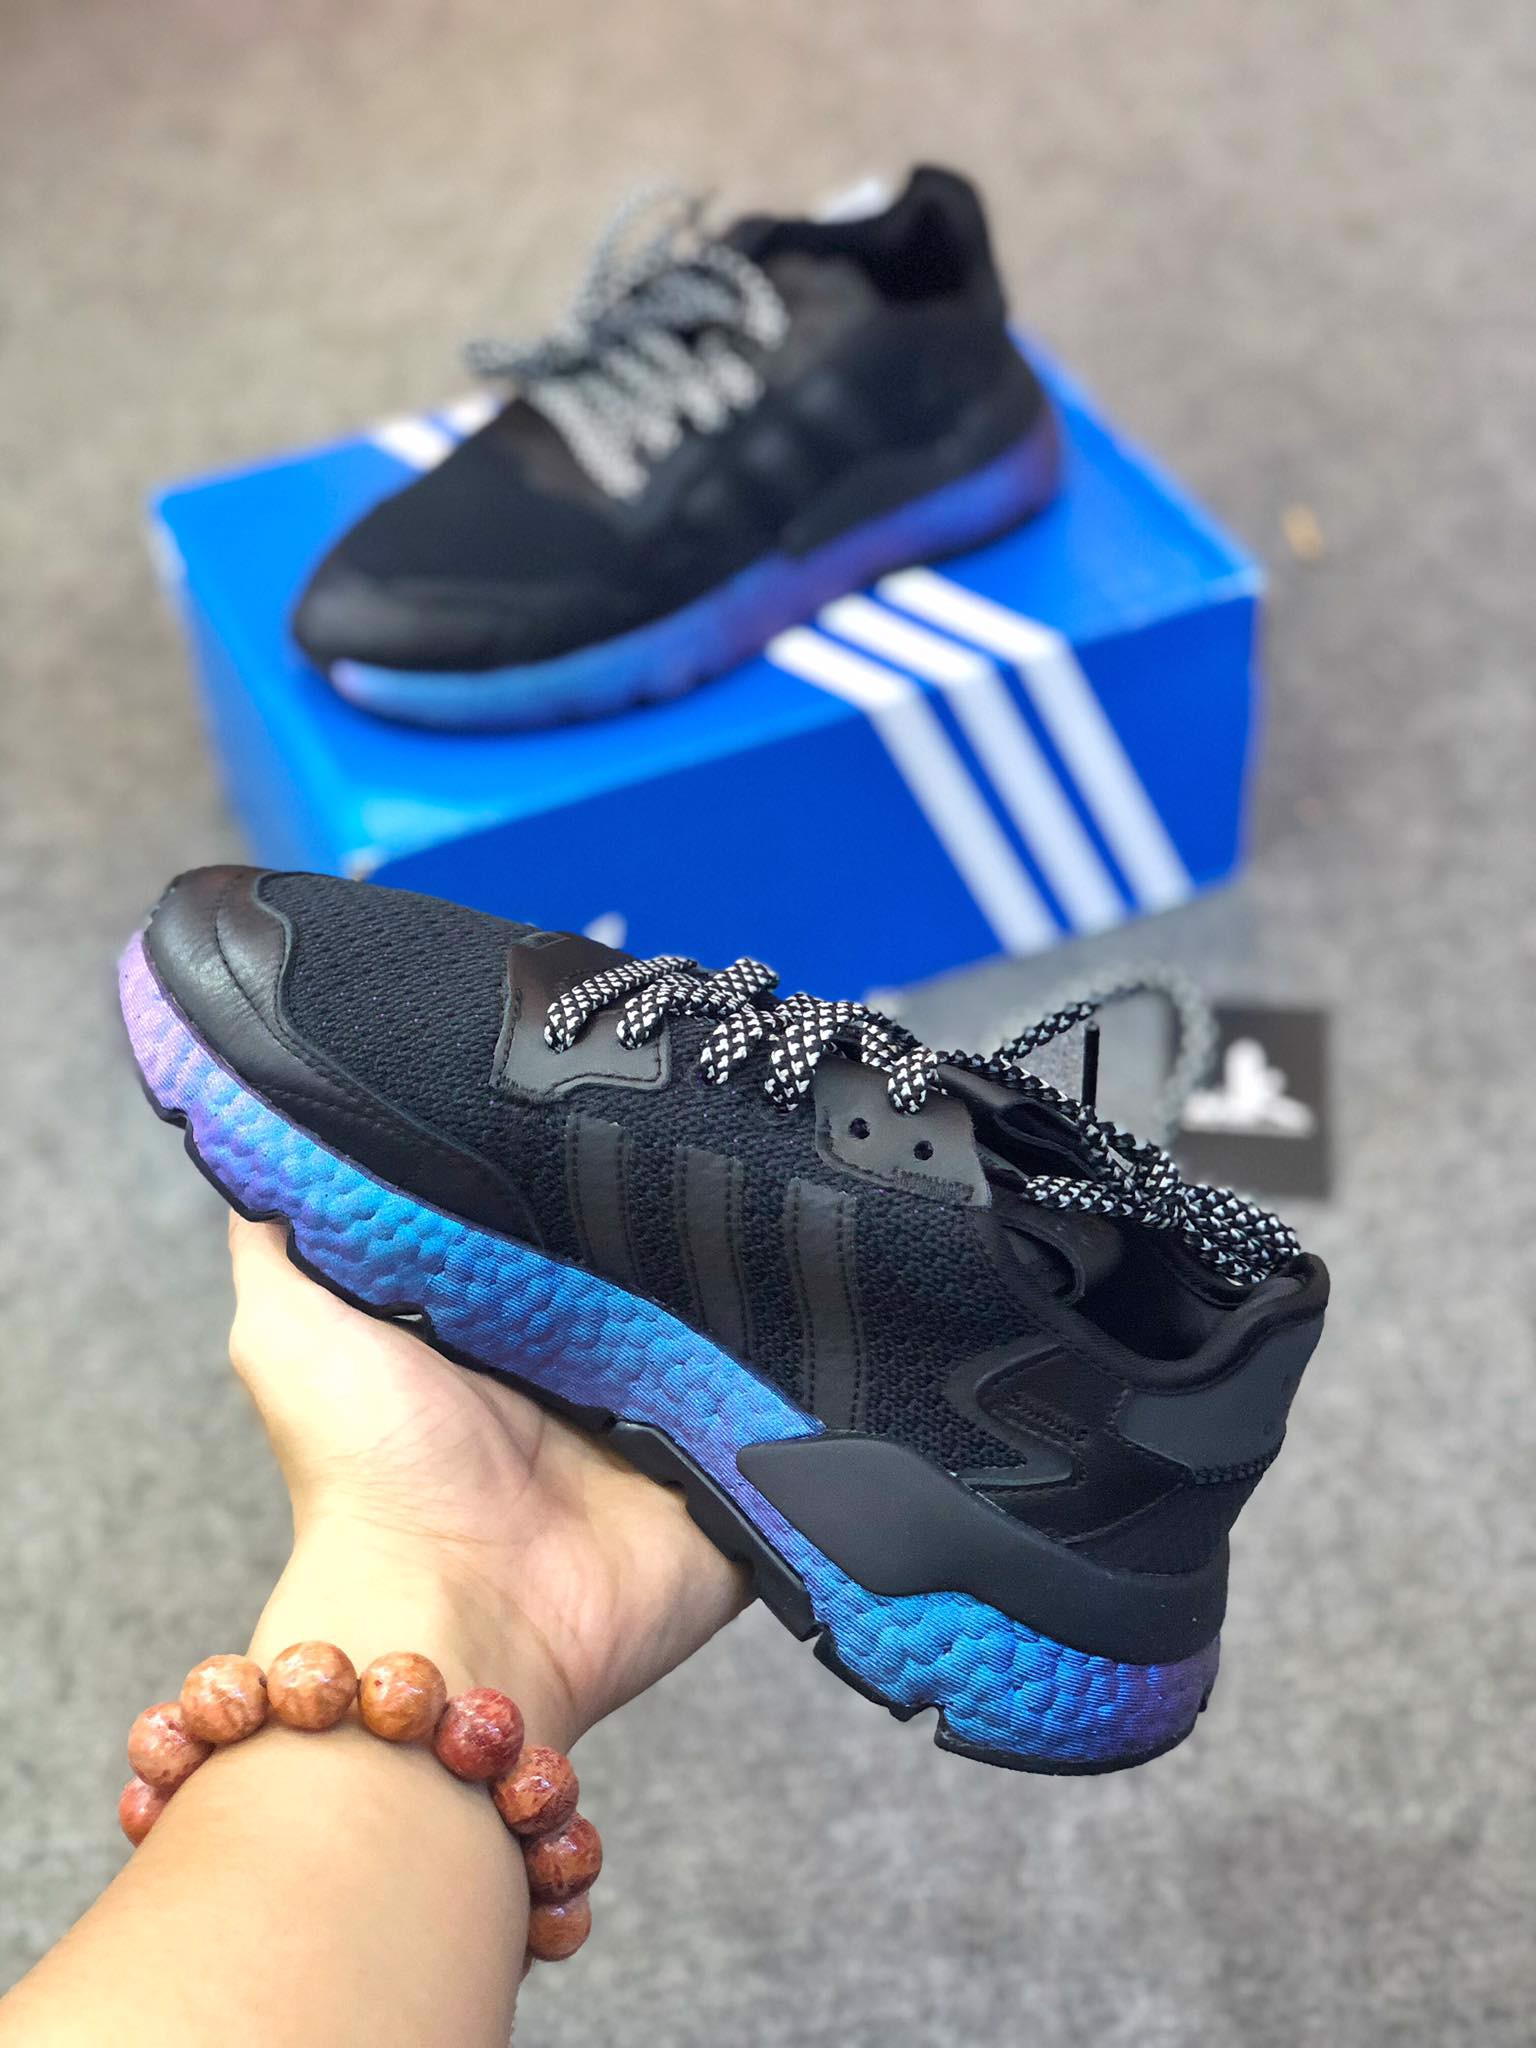 FV3615 Nite Jogger Black Metallic Boost